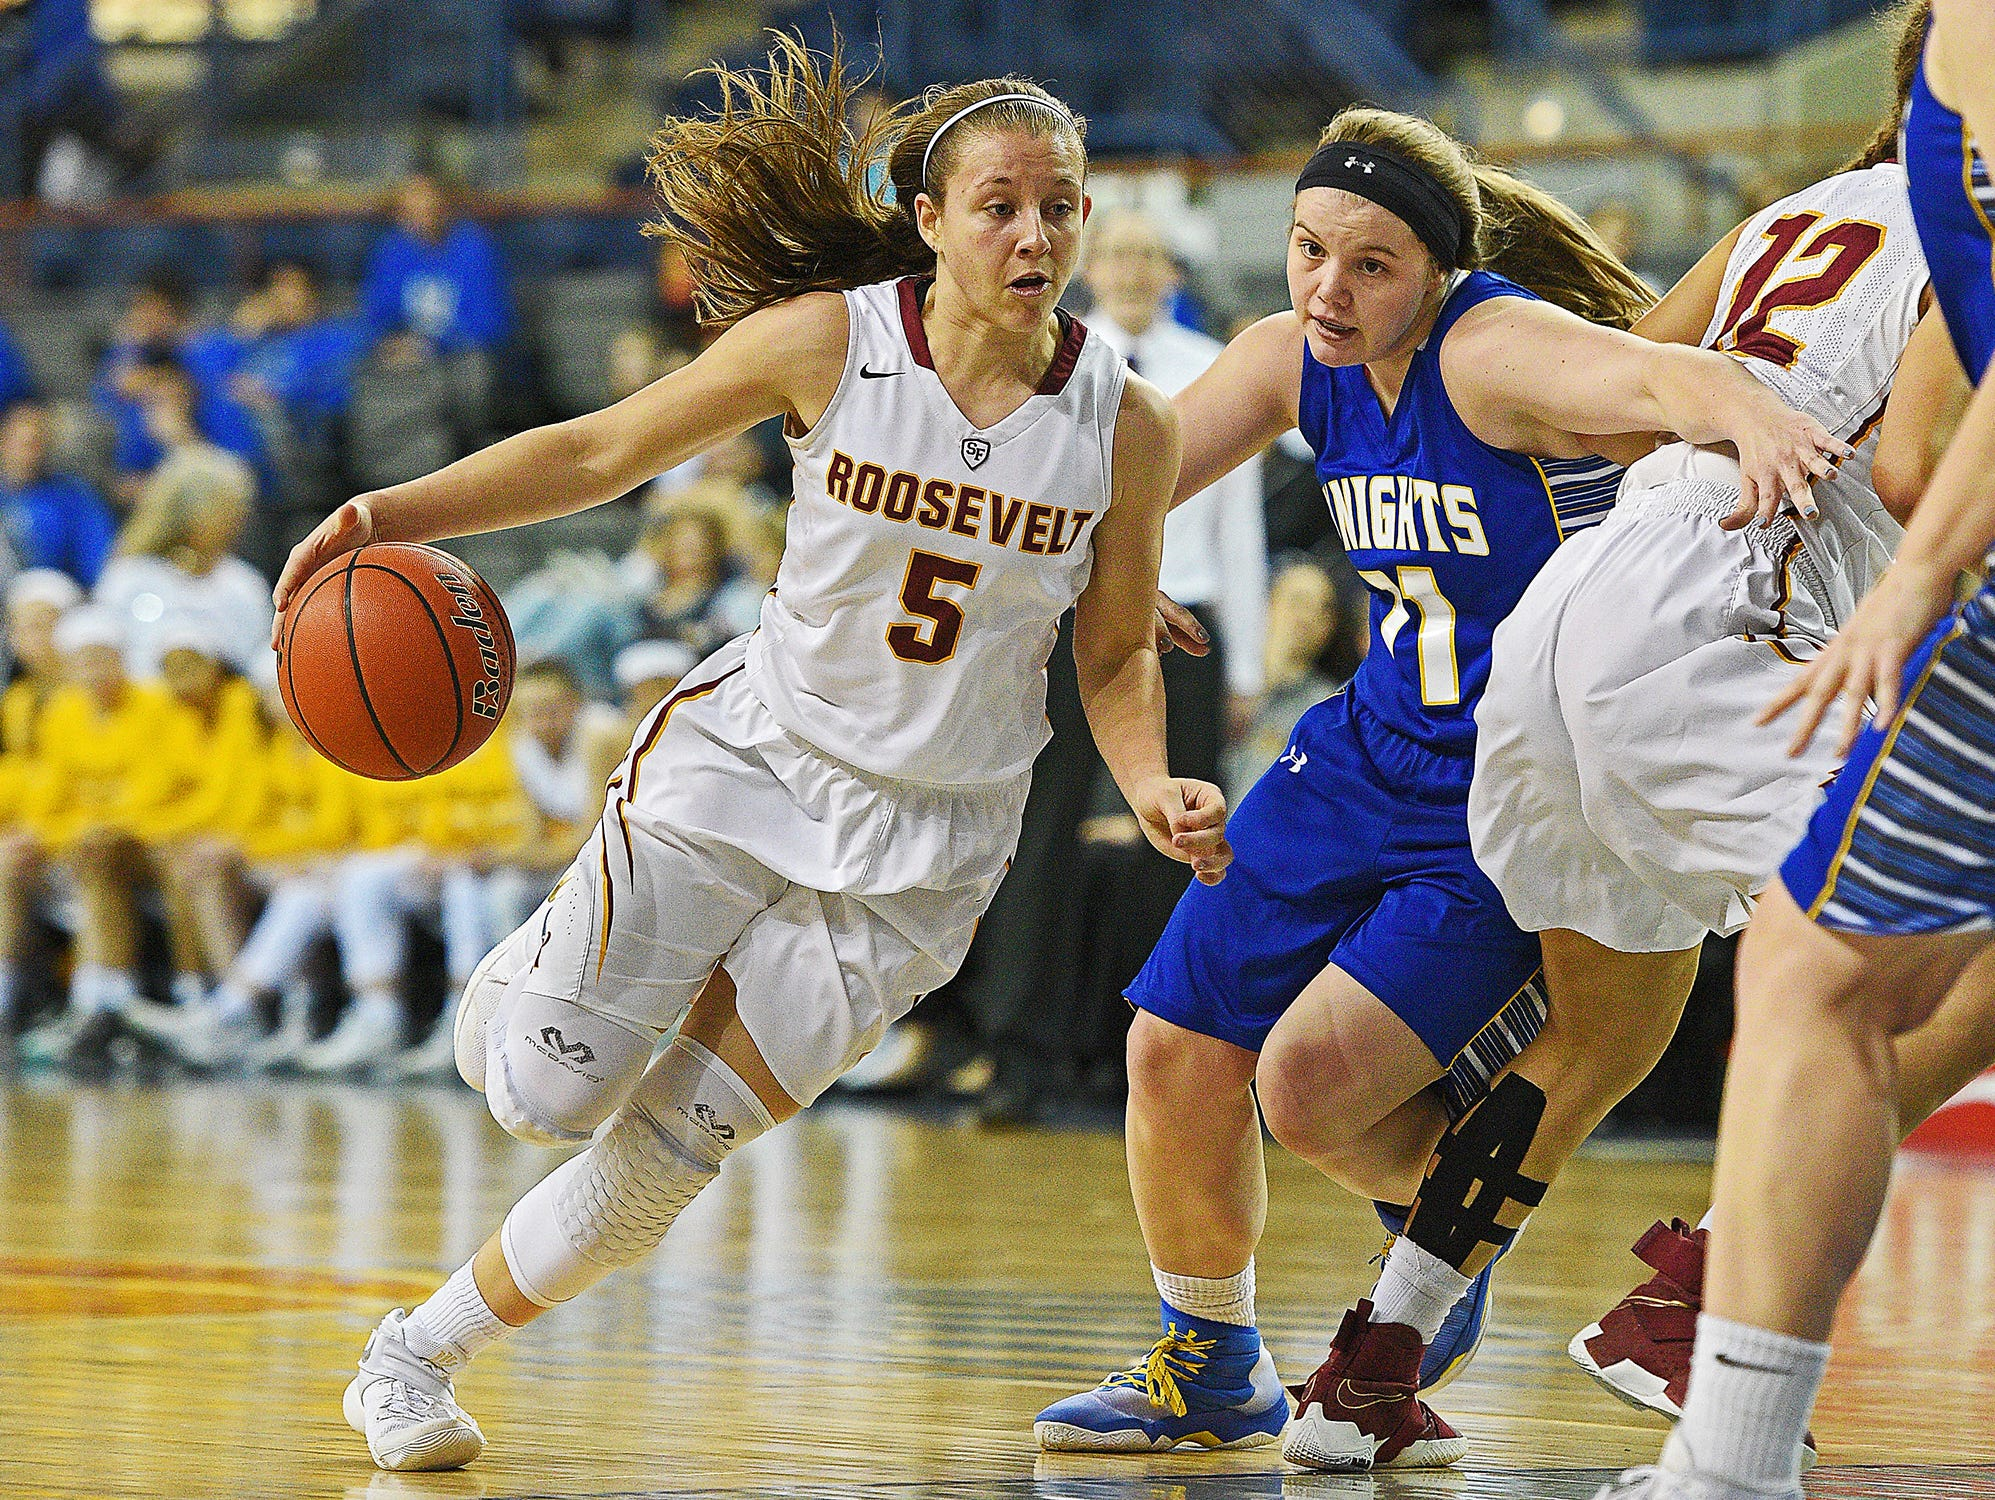 Roosevelt's Taylor Bonestroo (5) dribbles past O'Gorman's McKenzie Hermanson (11) during a 2017 SDHSAA Class AA State Girls Basketball quarterfinal game Thursday, March 16, 2017, at Rushmore Plaza Civic Center in Rapid City. O'Gorman beat Roosevelt 37-33.